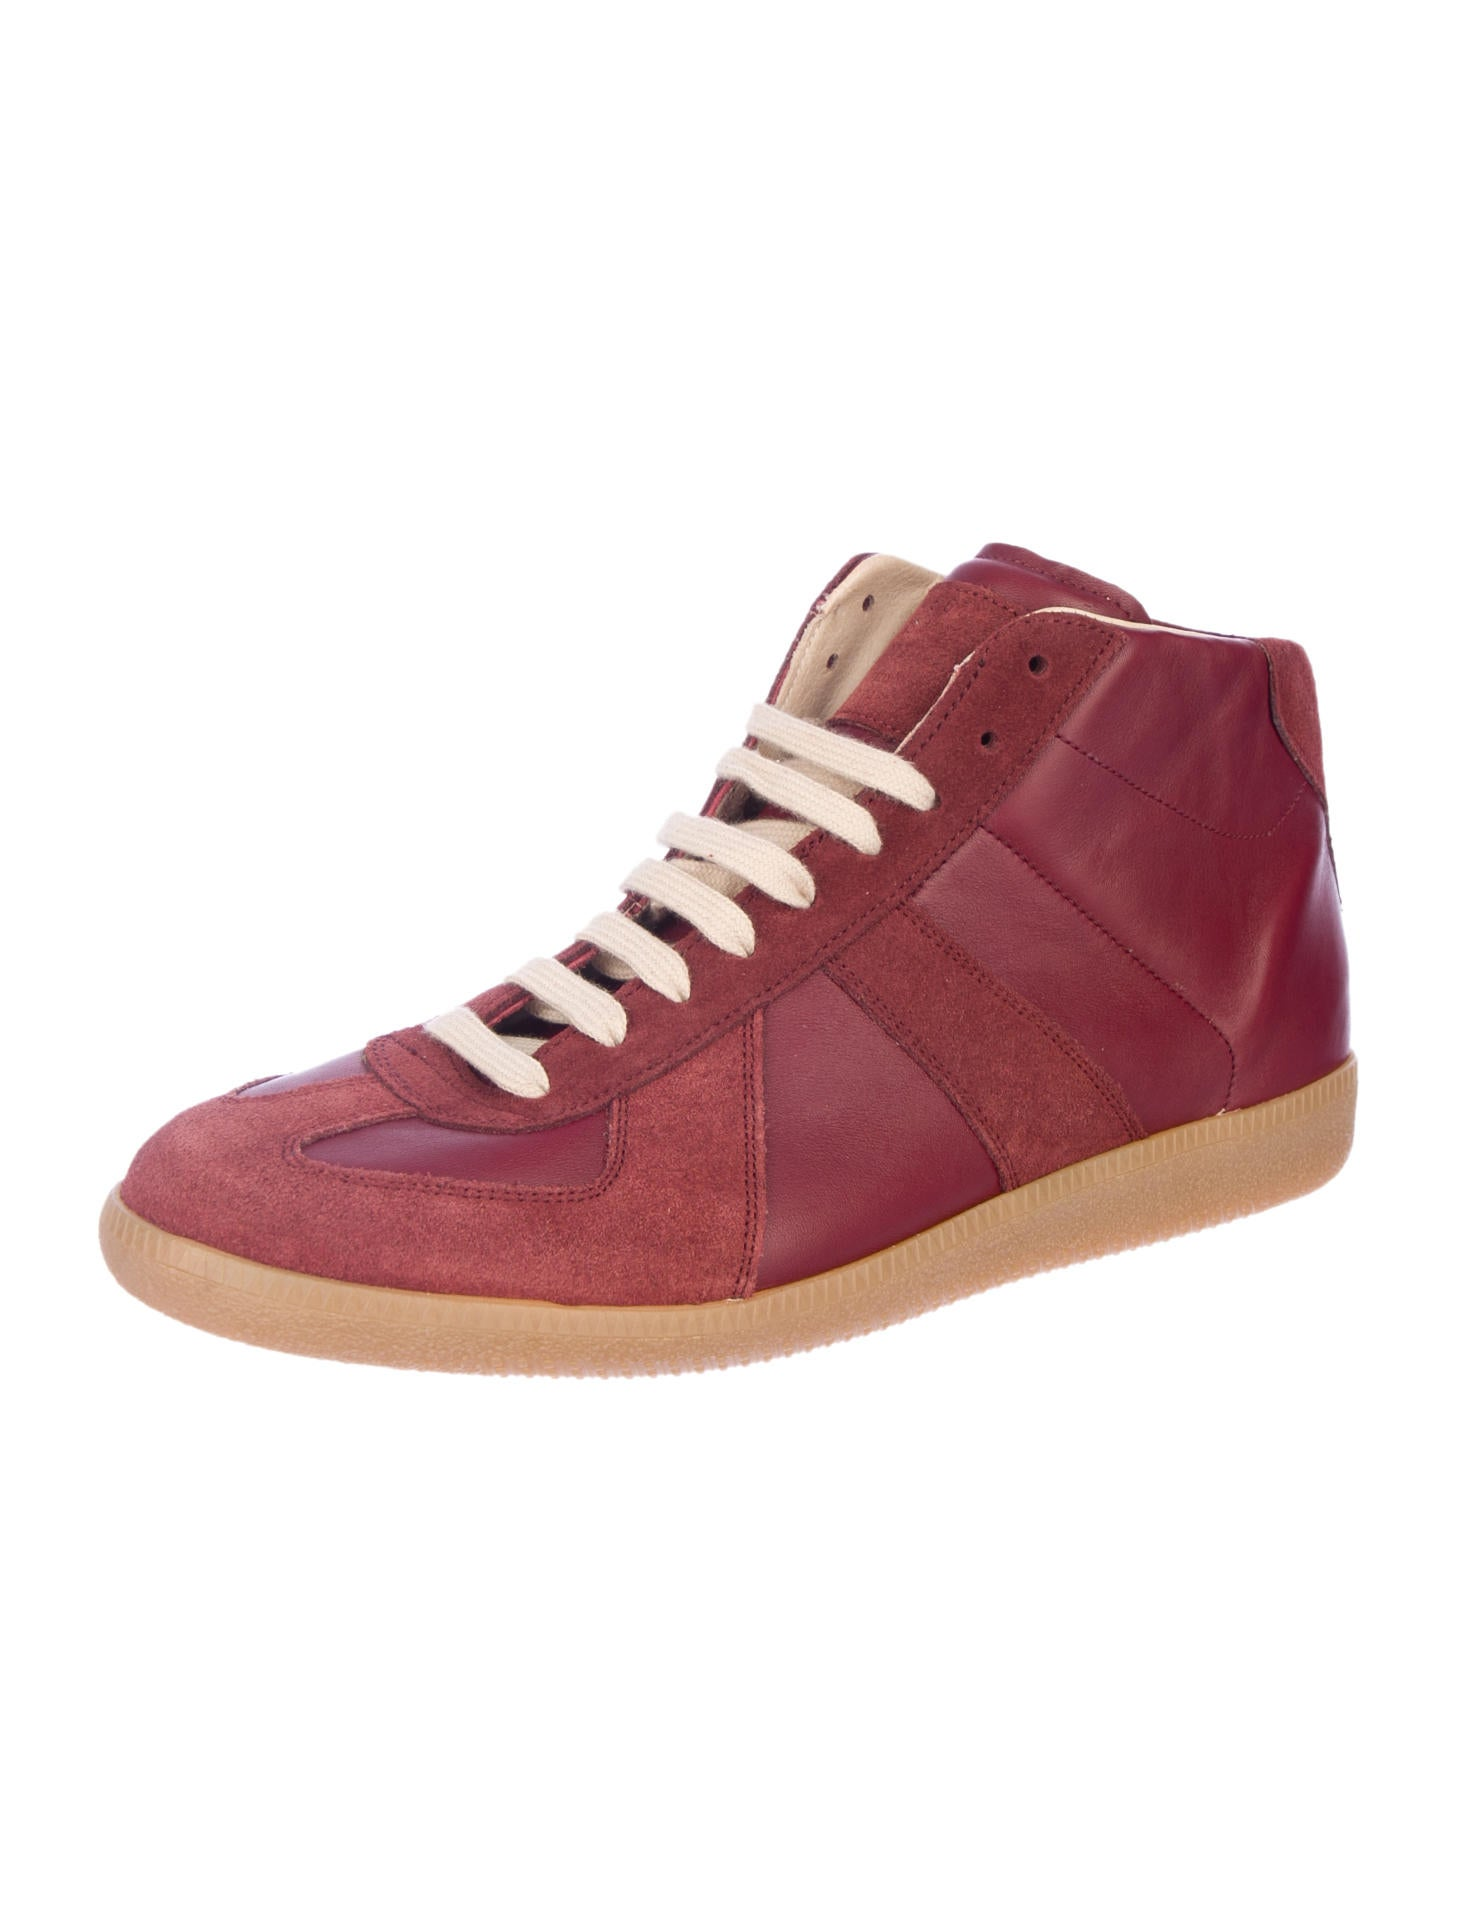 Maison martin margiela replica paneled high top sneakers for Replica maison martin margiela